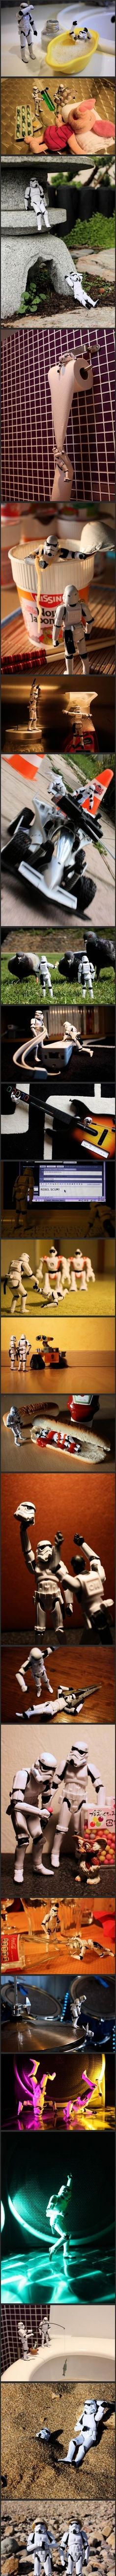 storm trooper fun